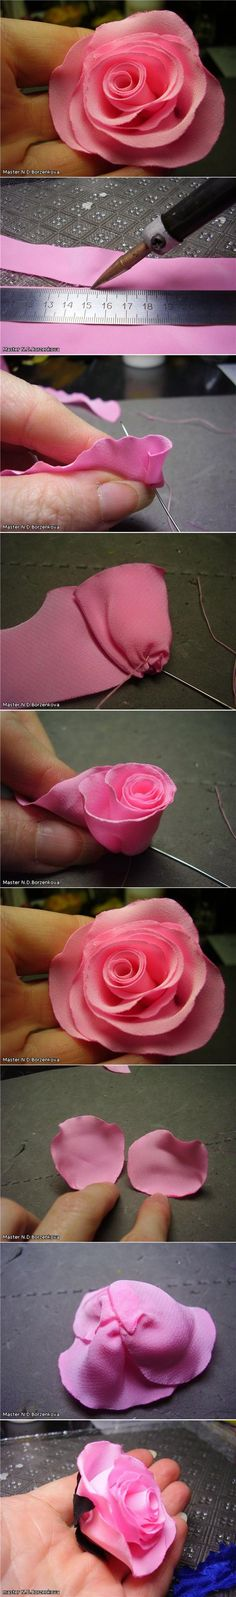 DIY Pretty Fabric Rose DIY Pretty Fabric Rose TOO MANY ACCENT DECOR IDEAS RUSHING TO MY HEAD!